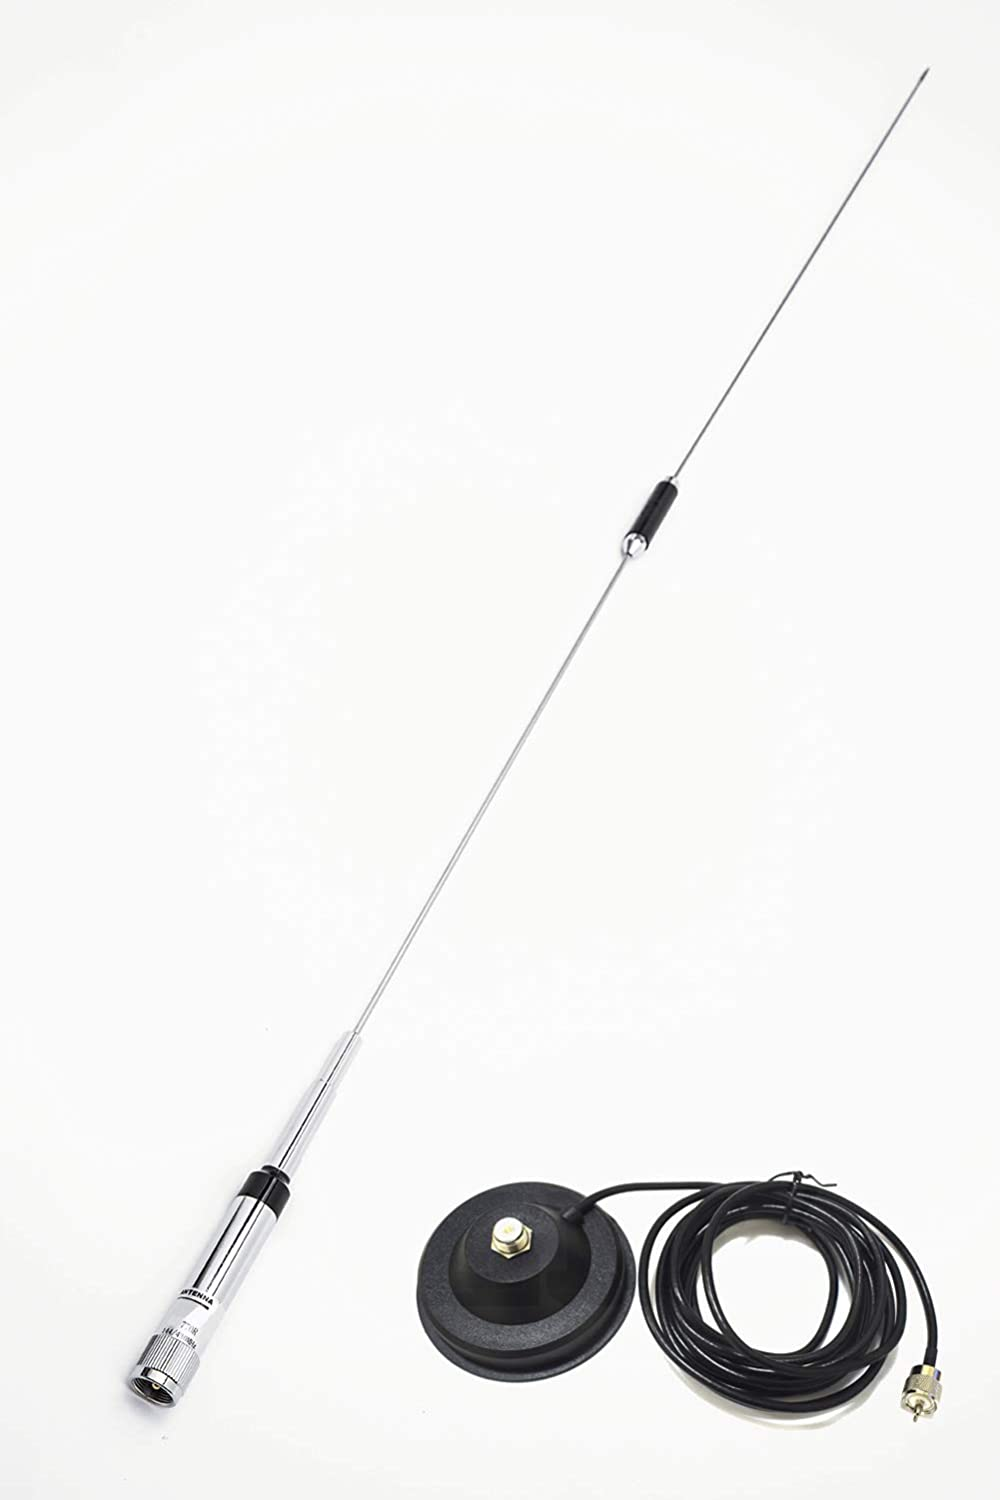 Mobile Antenna 38 inch with Heavy Duty Magnetic Mount VHF/UHF (144/430MHz) Mobile/Car Radio Antenna 770R